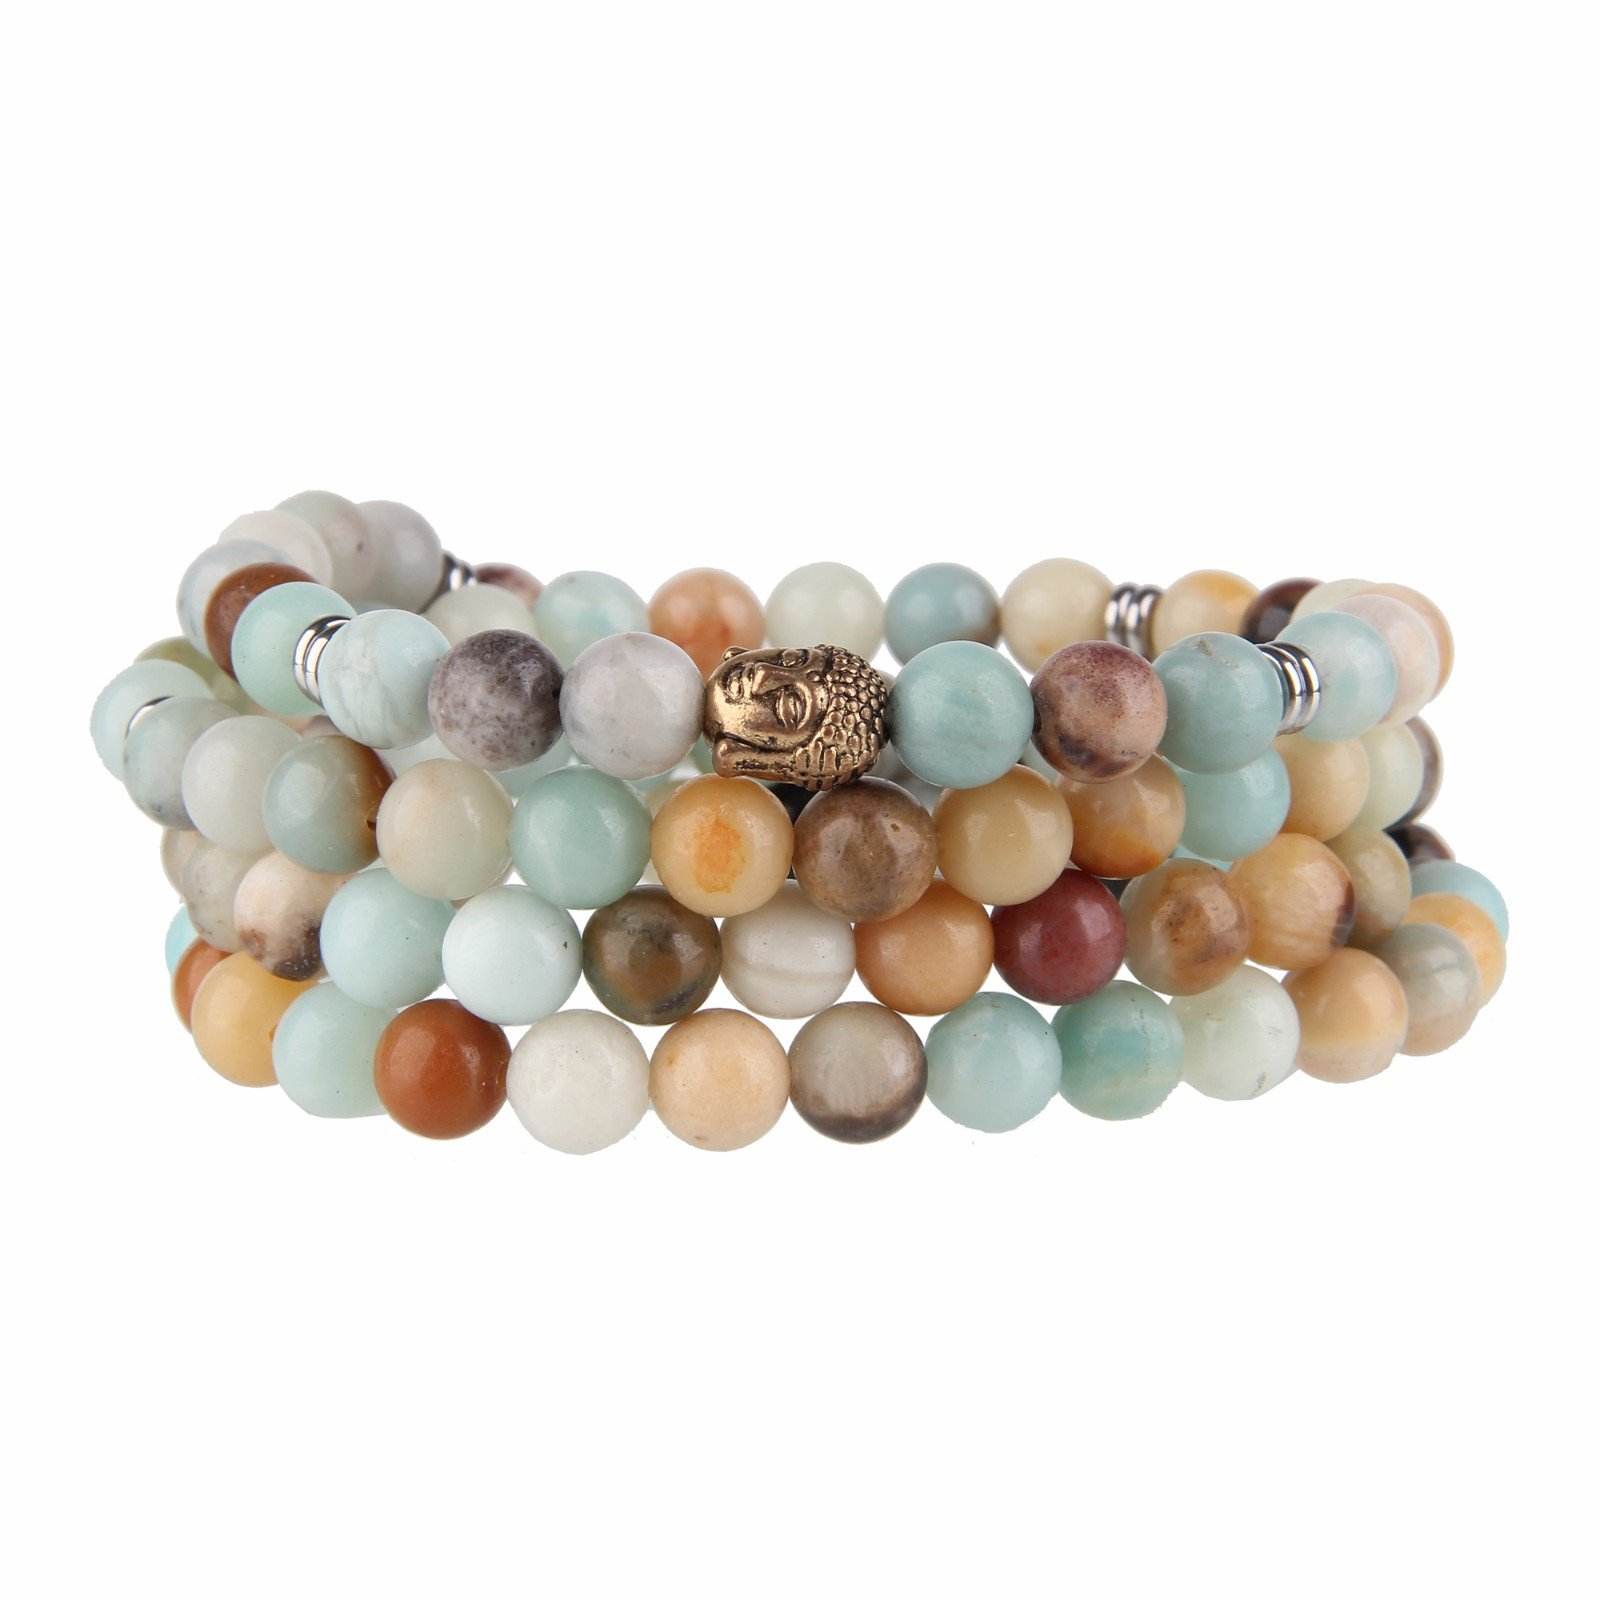 Beauty7 108 8mm Mixed Color Matte Natural Amazonite Beads Bracelet Wrap Meditation Buddhist Rosary Prayer Mala Mantra Yoga Elastic Necklace Healing Jewelry